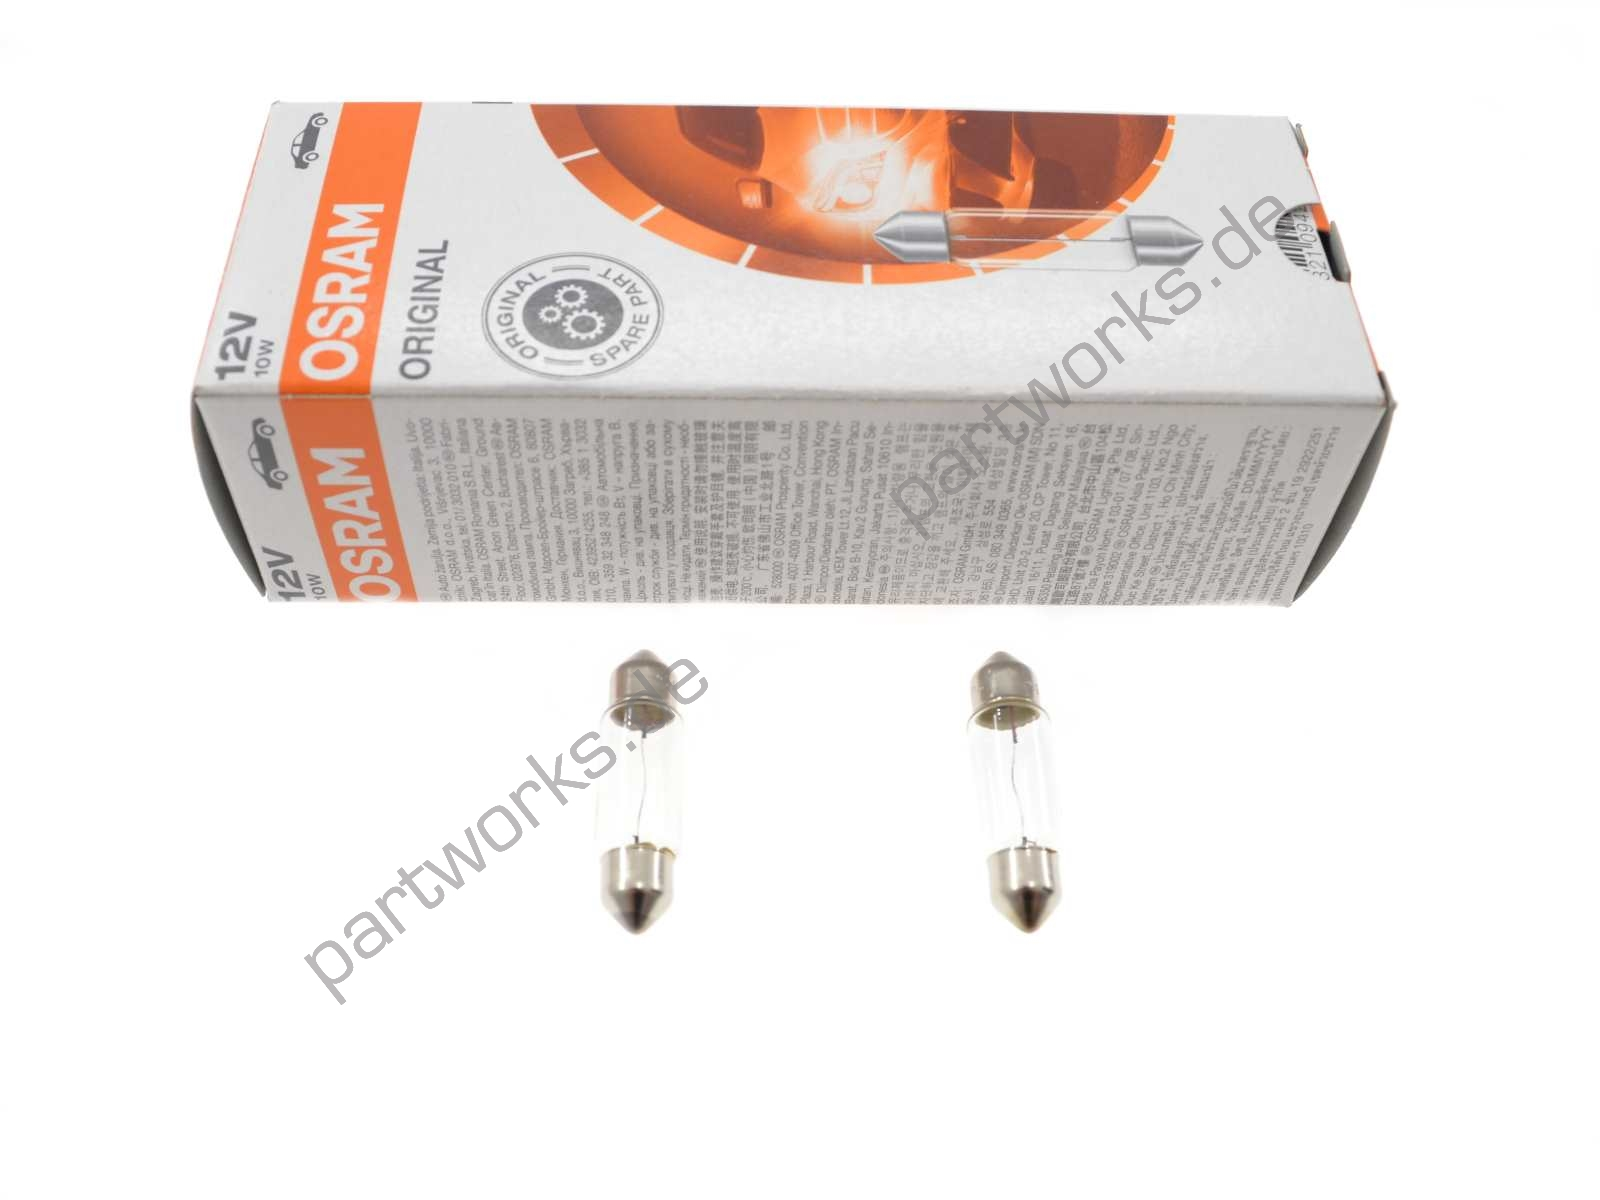 2x Osram Bulb For Porsche 924 944 968 928 Interior Lighting